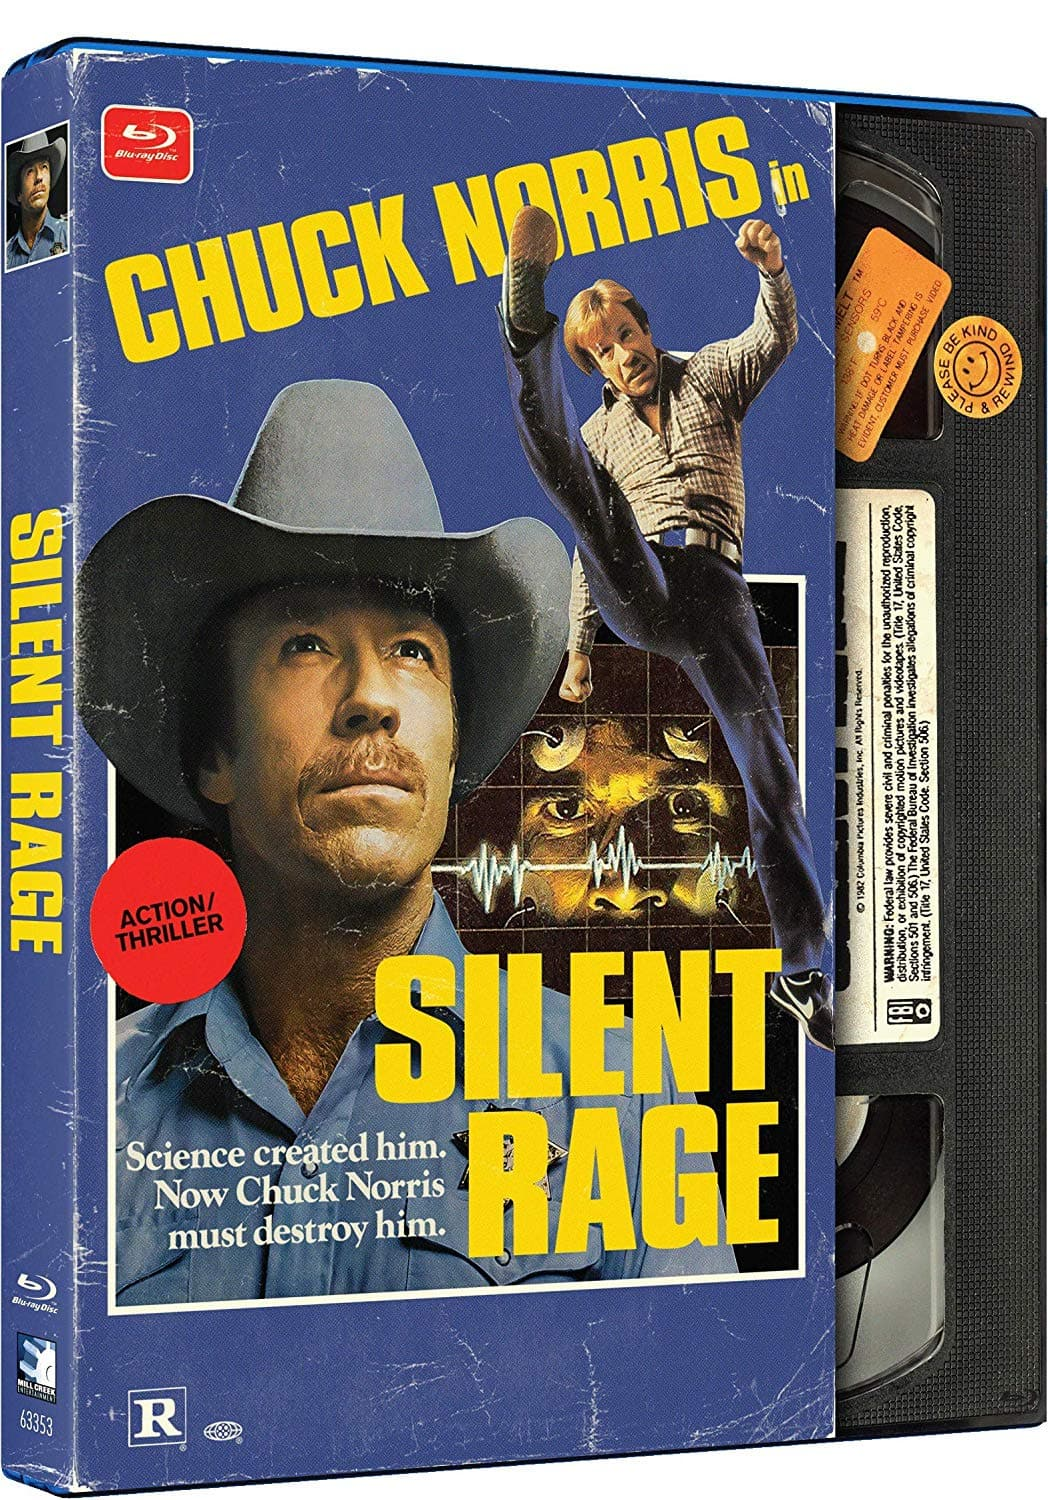 Silent Rage Retro VHS Look Pre-Order (Blu-ray) $7.50 & More + Free Shipping @ Amazon